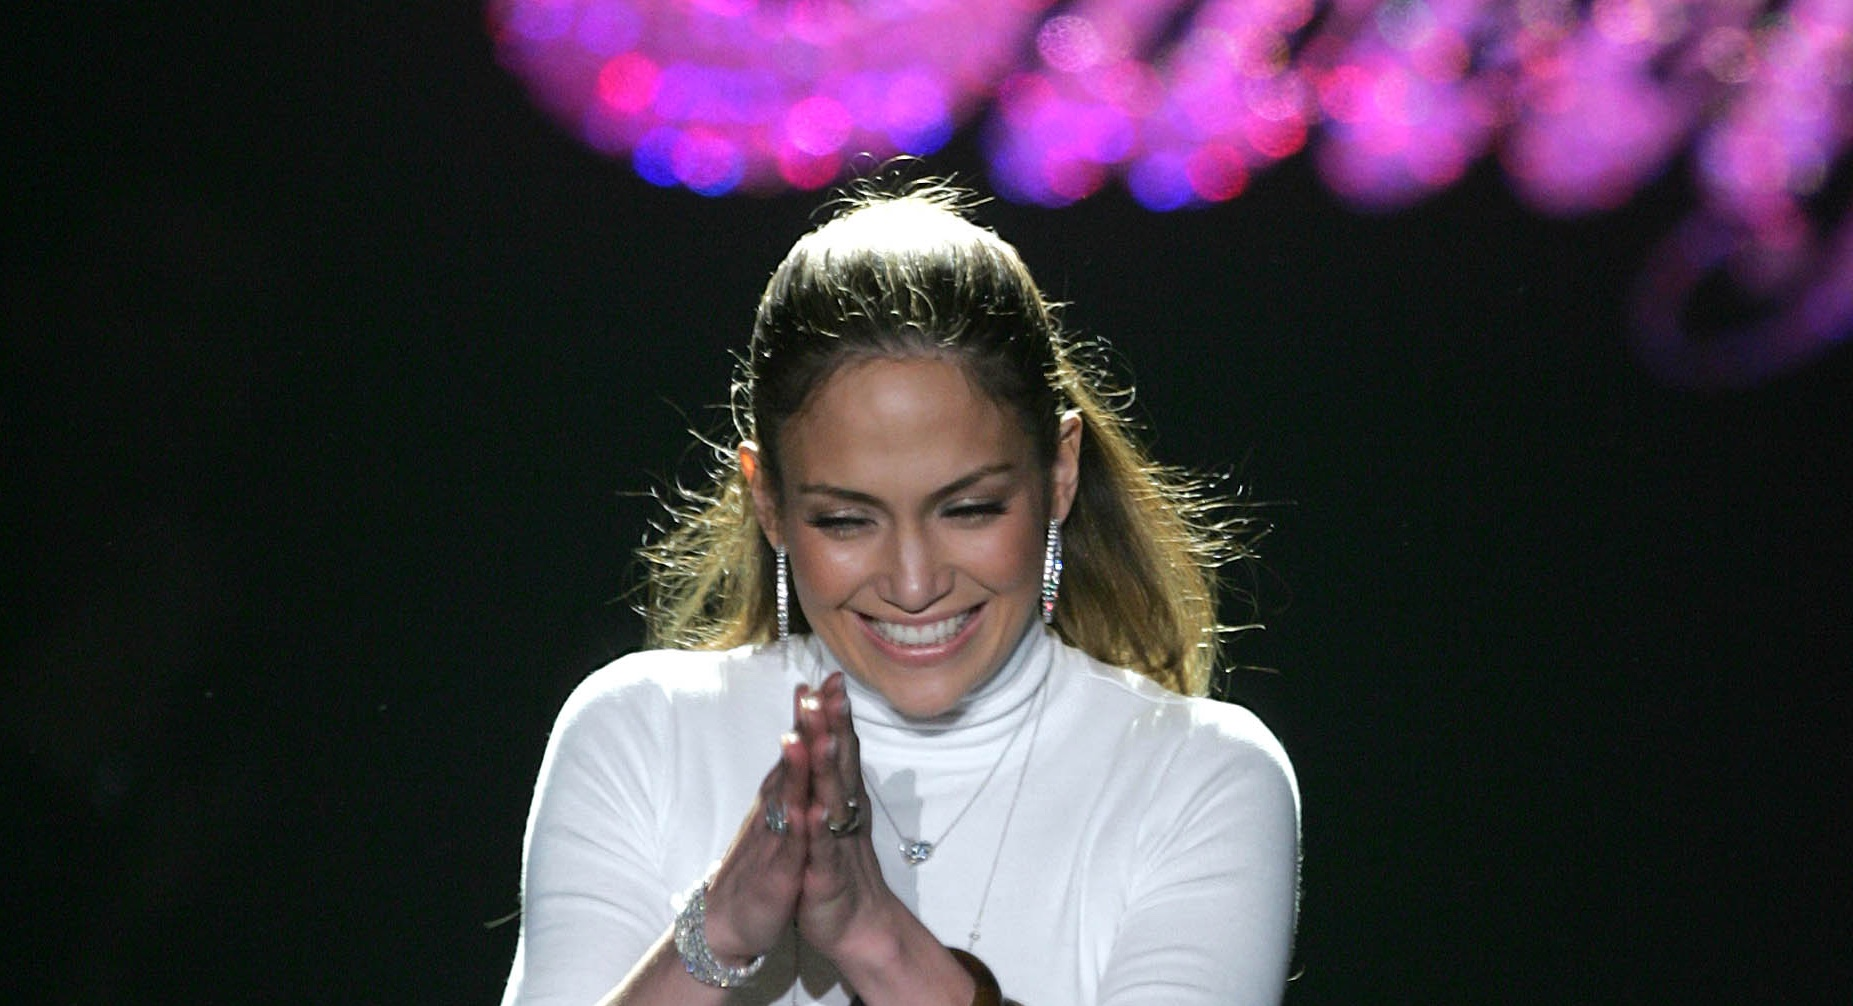 JLo Shares How She's Coping & Encouraging Generosity Where Possible